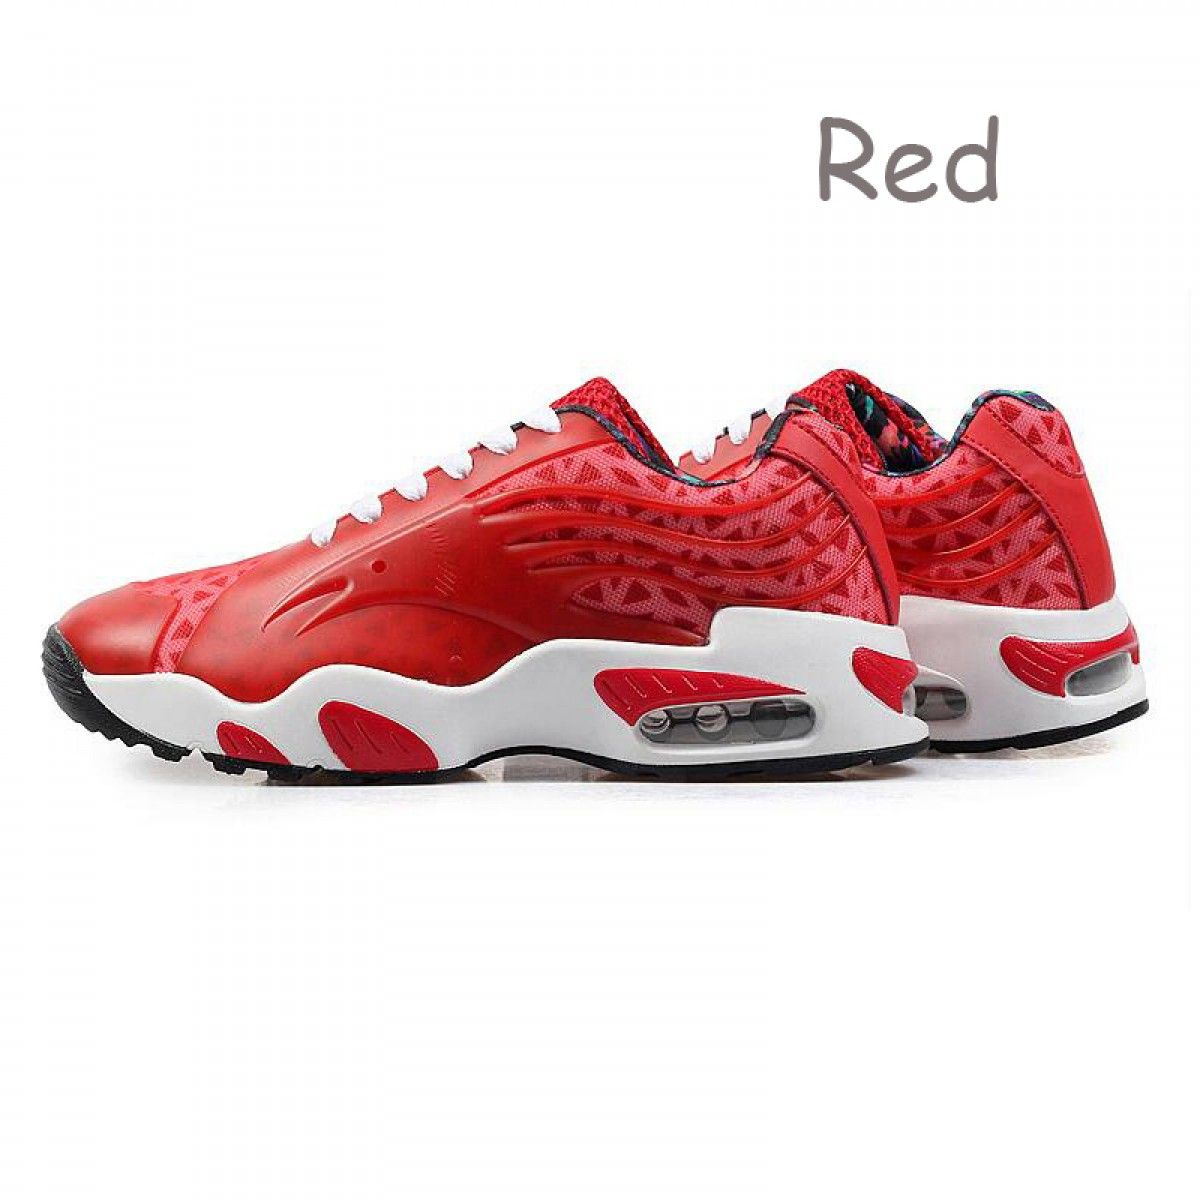 034e1867 Height increasing basketball shoes make you taller 6.5cm / 2.6inch ...